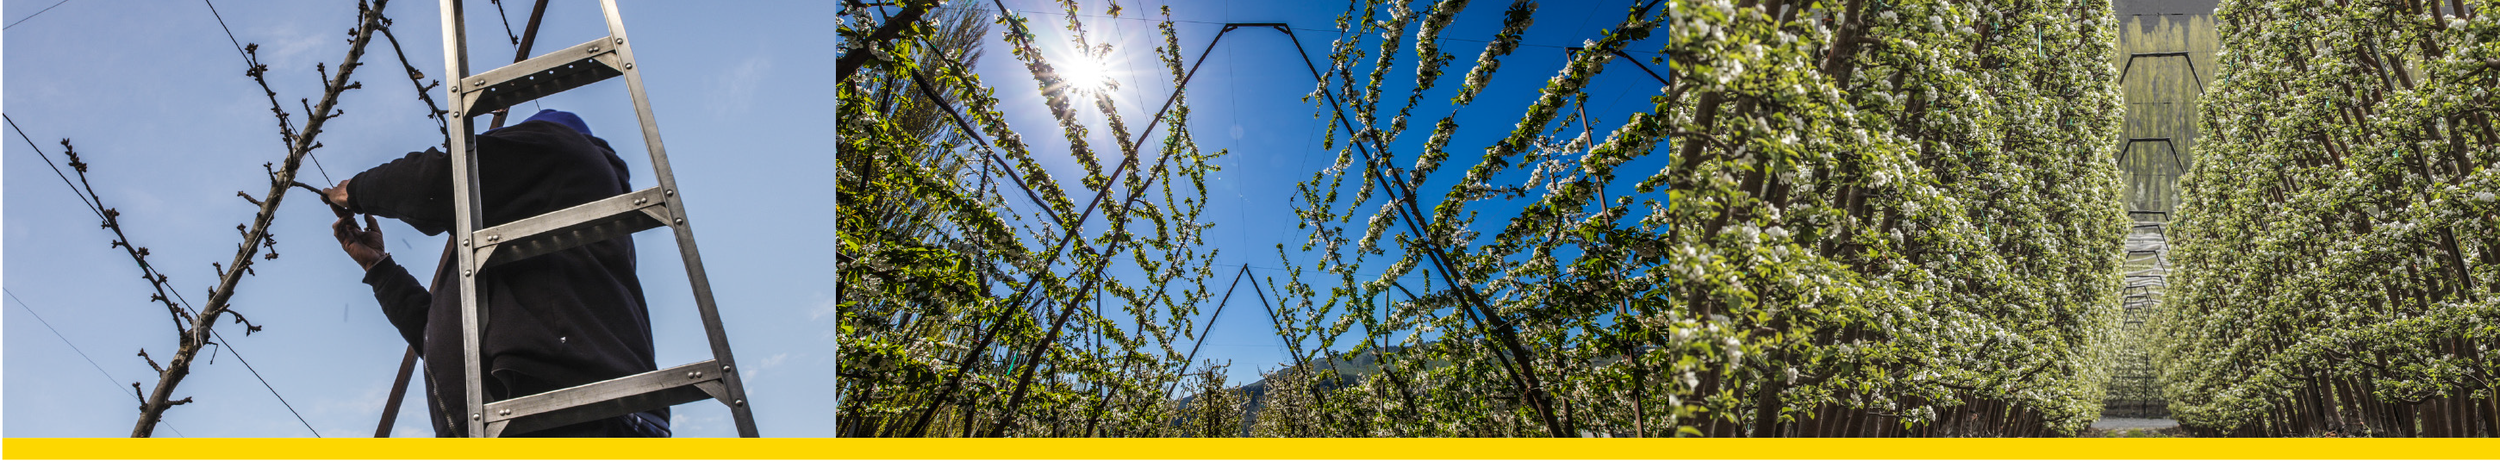 Our comprehensive trellis system drives growth into the fruit, not the tree. Perfect spacing and directional growth of tree limbs allow ideal light and air circulation to flow around developing fruit. Growth that usually ends up in unnecessary limb growth redirects into the fruit, capturing the nutrients that create our unmatched taste profile.